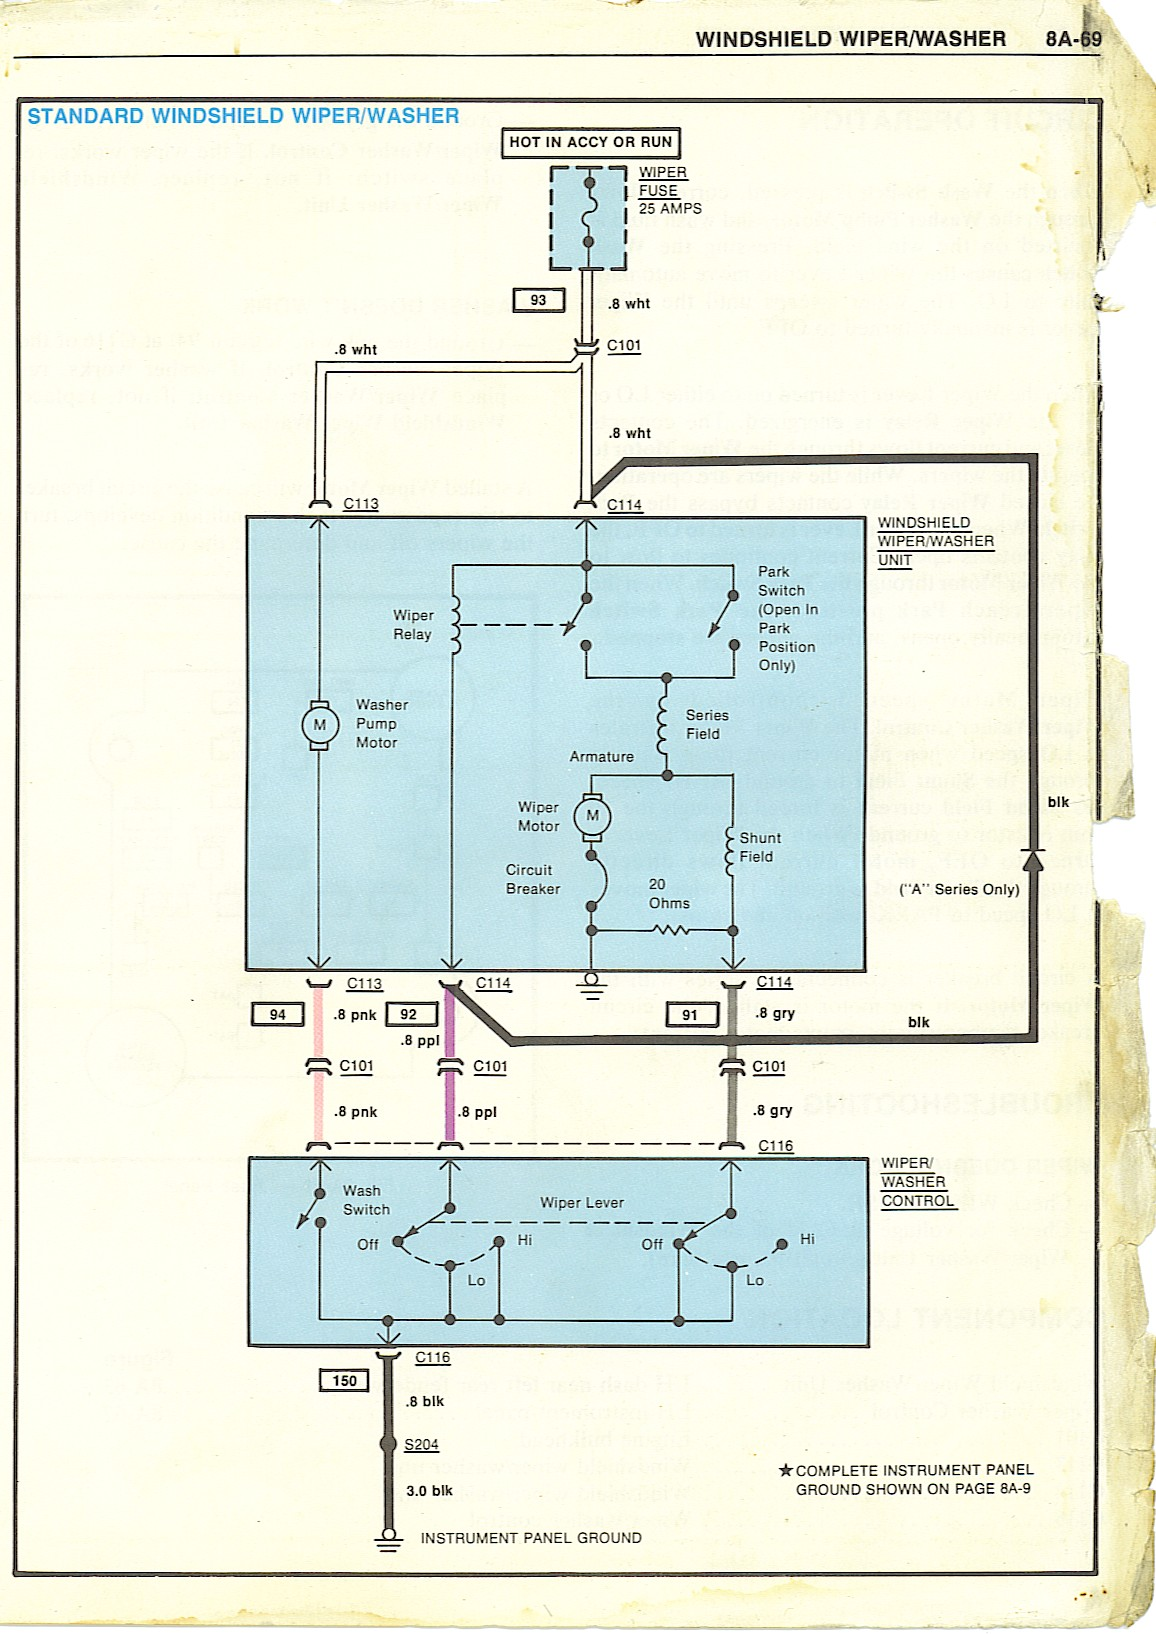 Amazing Chevy Monte Carlo Vacuum Diagrams On 1967 Pontiac Vacuum Diagram Wiring Digital Resources Spoatbouhousnl